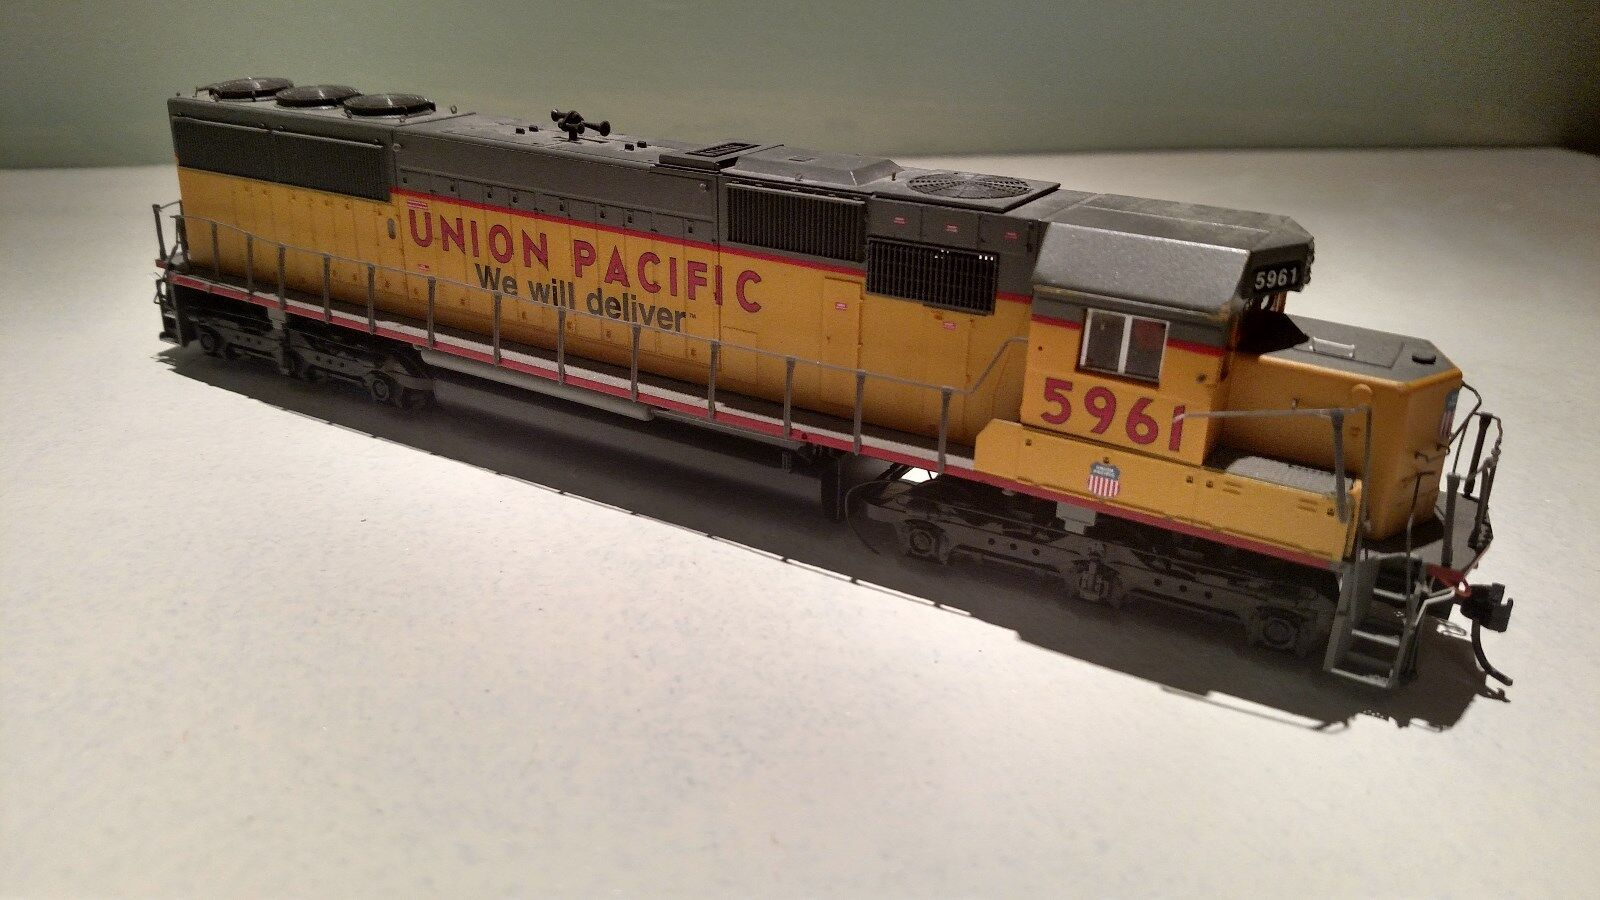 UNION PACIFIC SD60, UP5961, by Predo2000, Used, very good condition